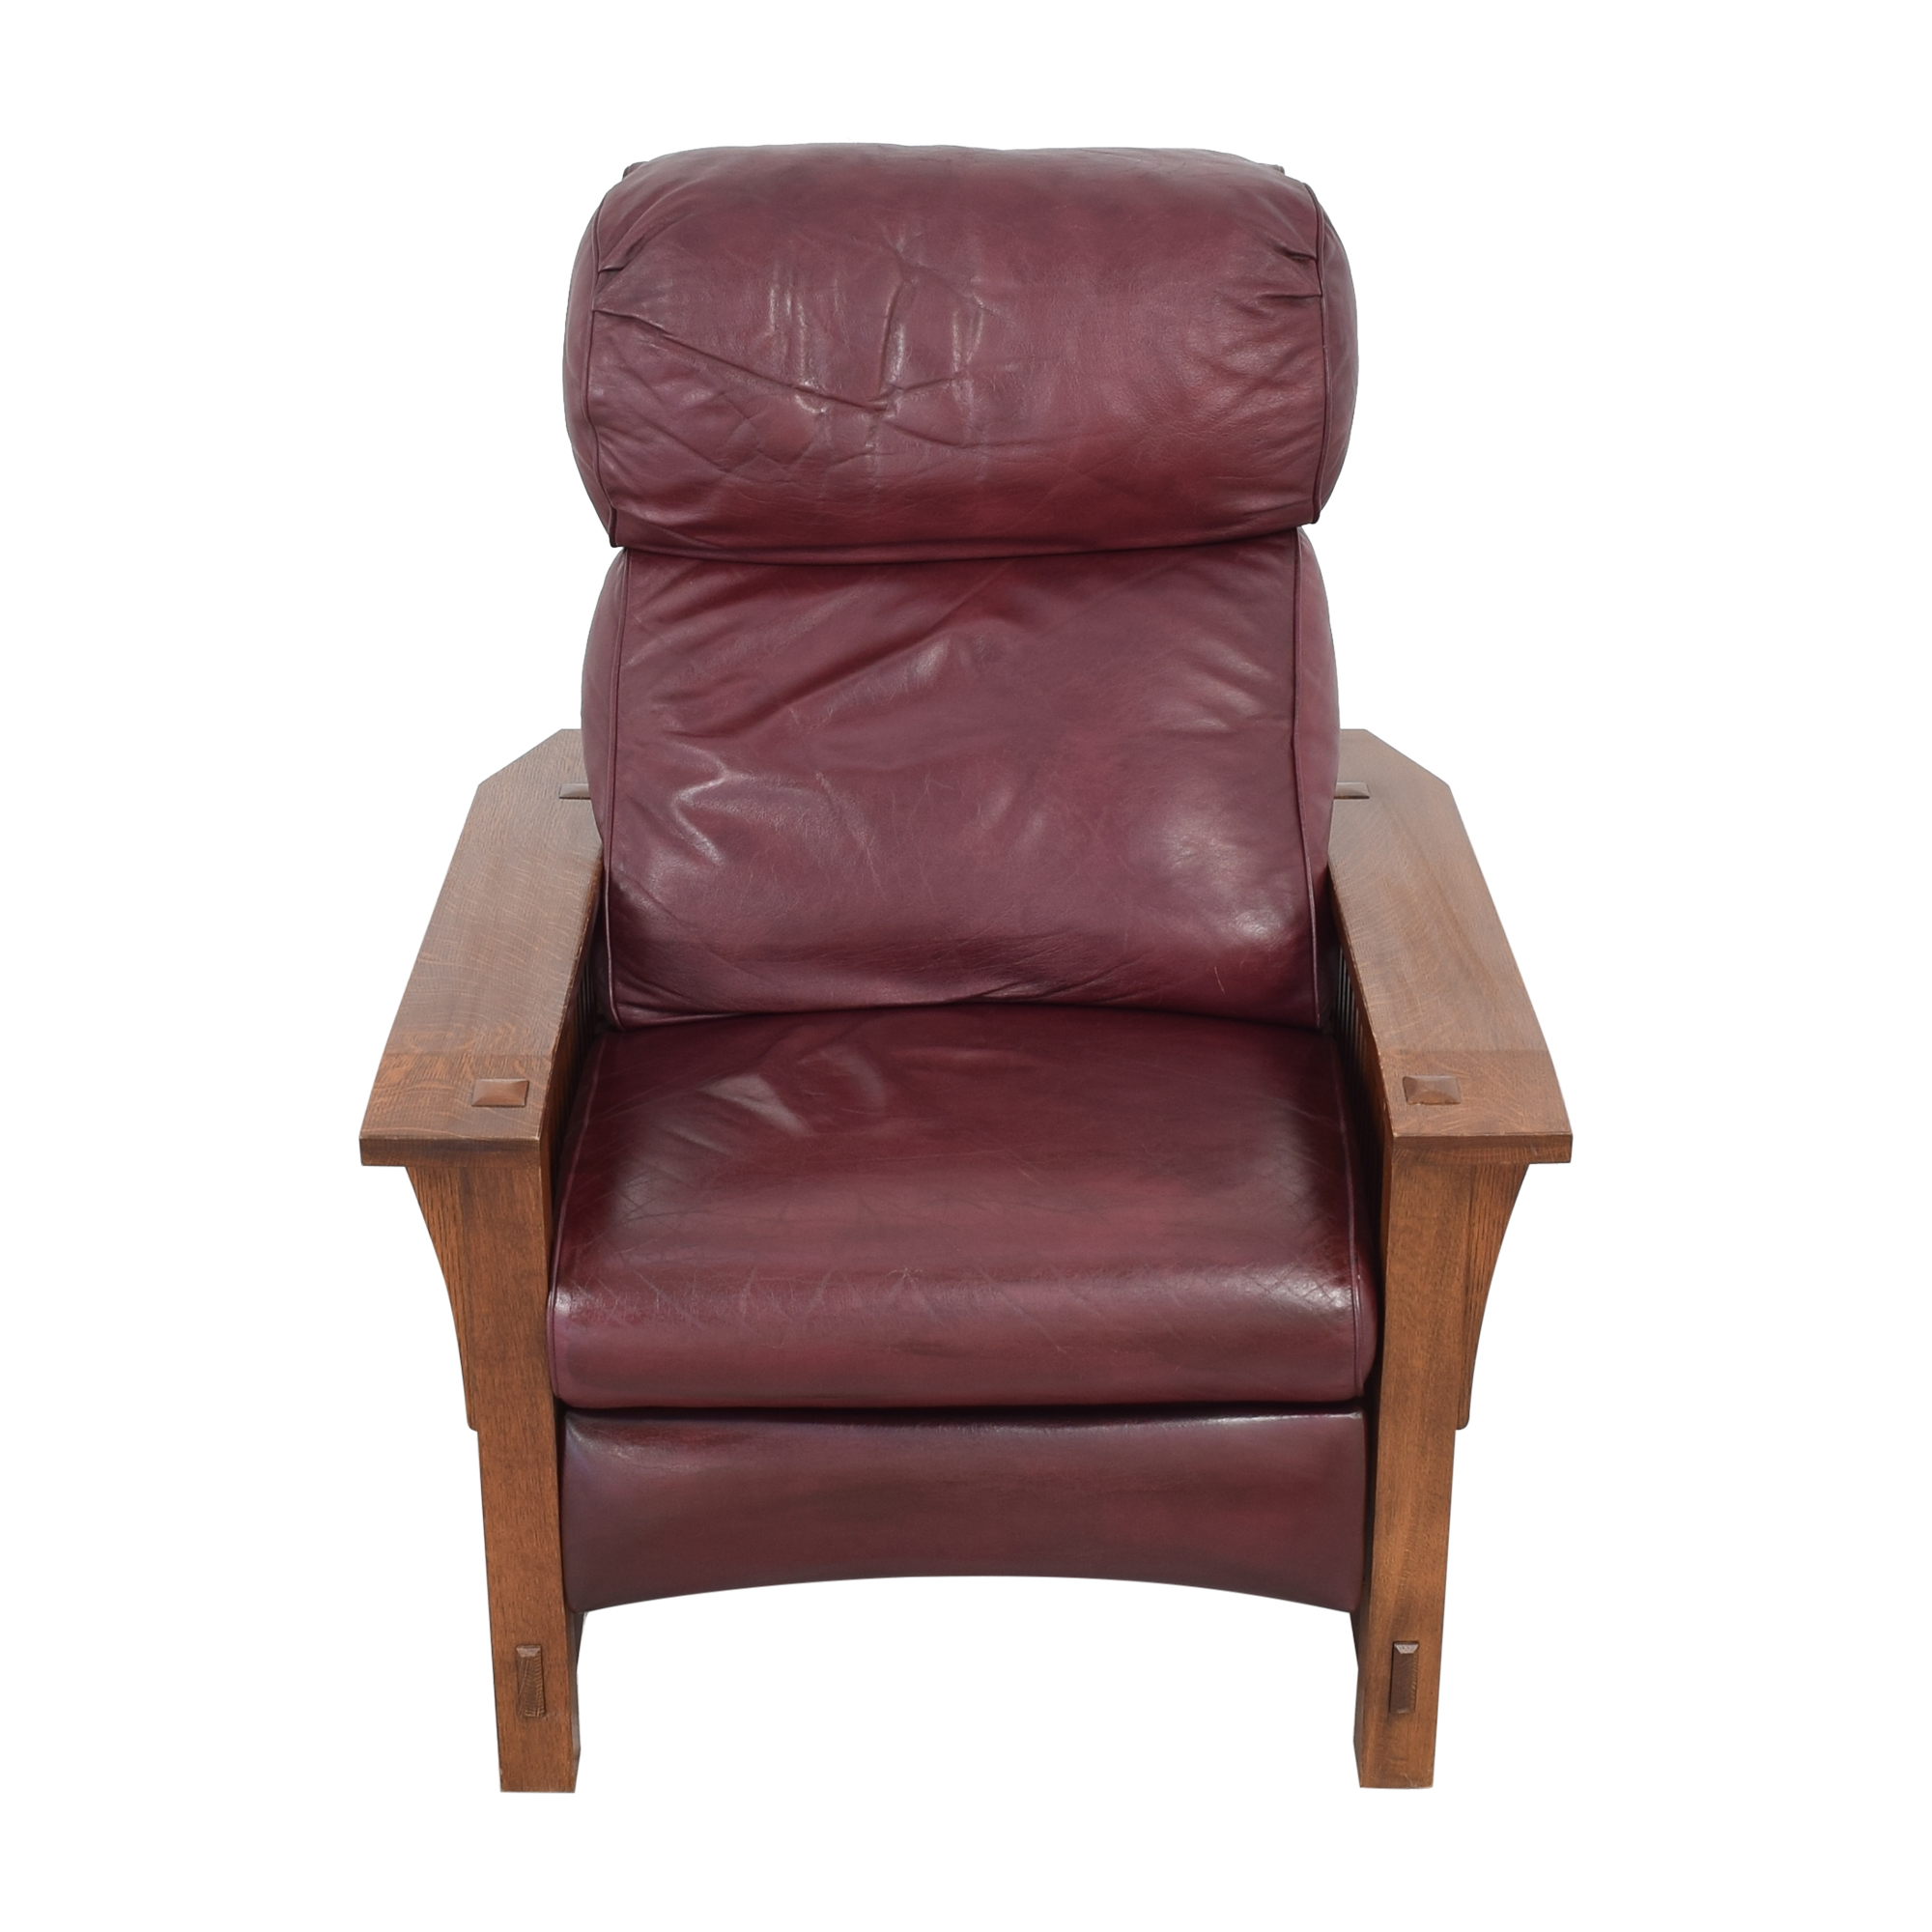 Stickley Furniture Stickley Spindle Morris Recliner nyc